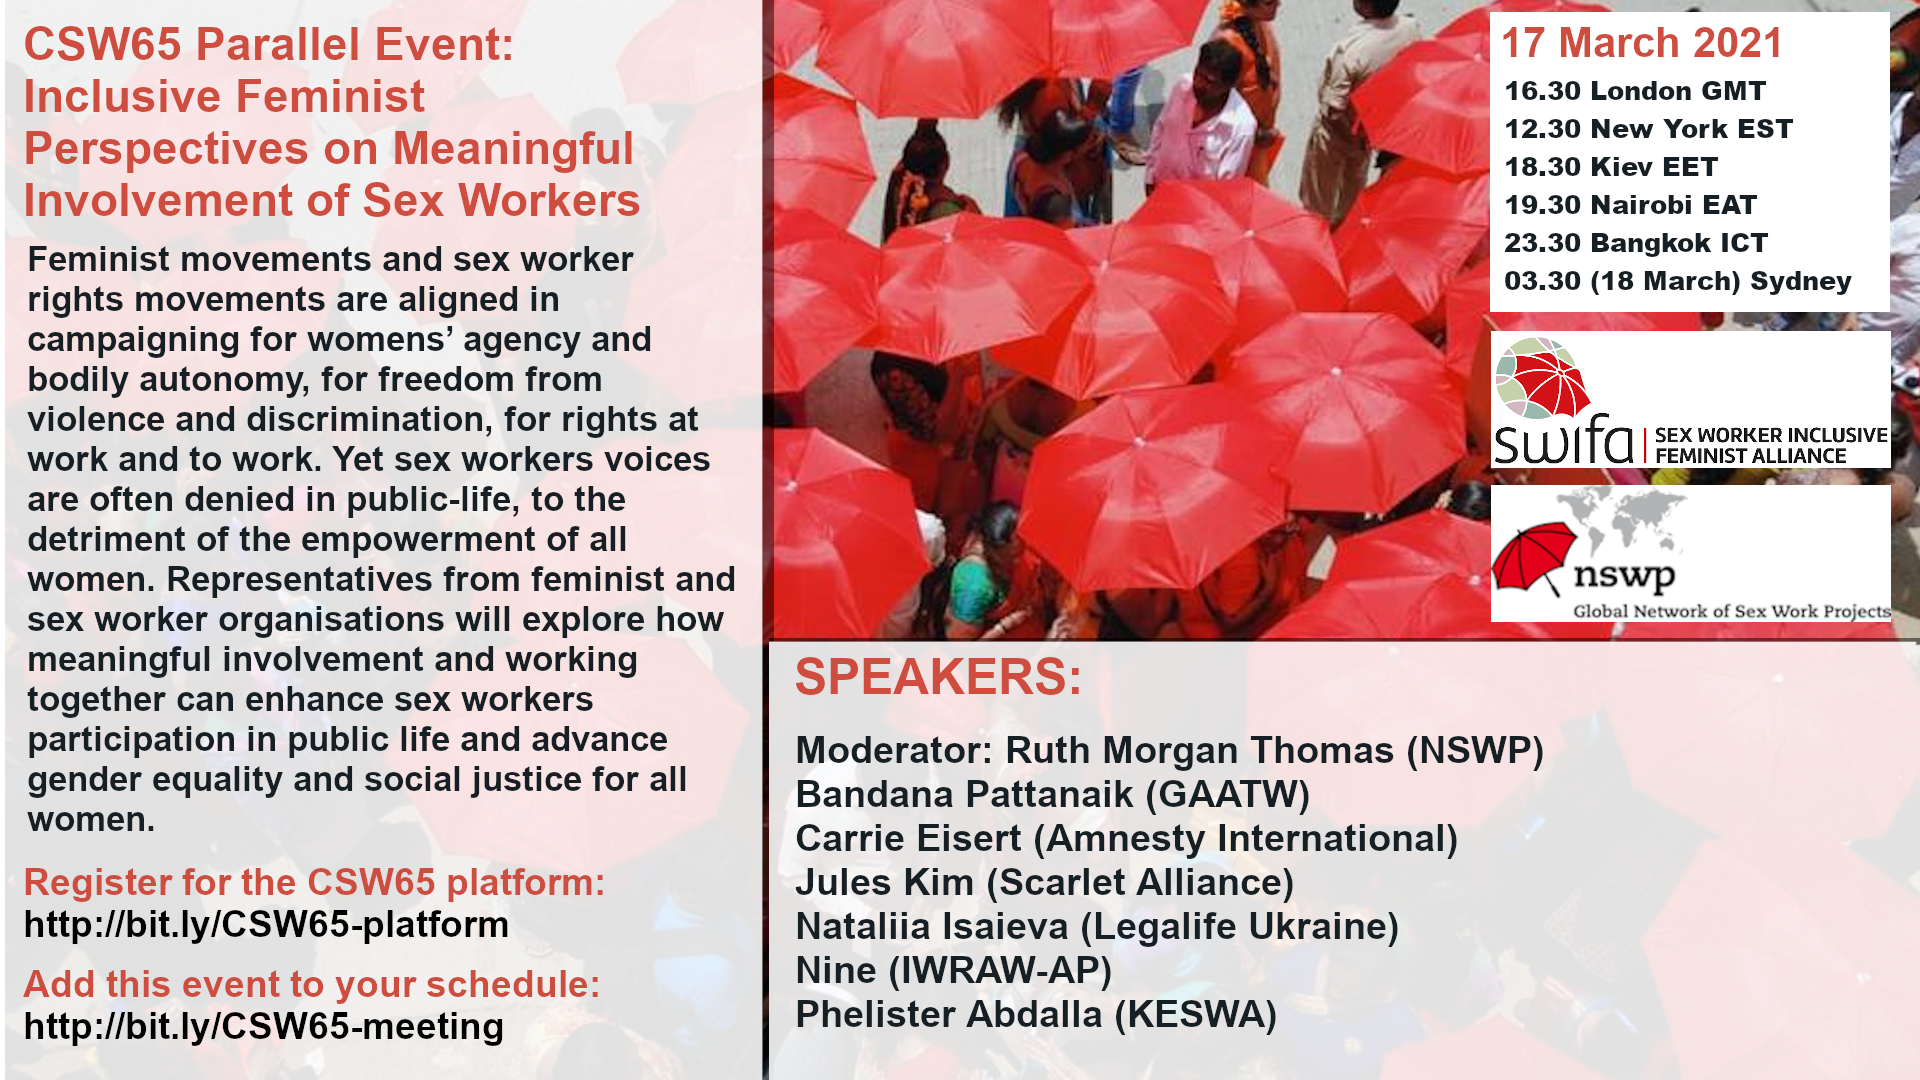 A flyer for the NSWP CSW65 event